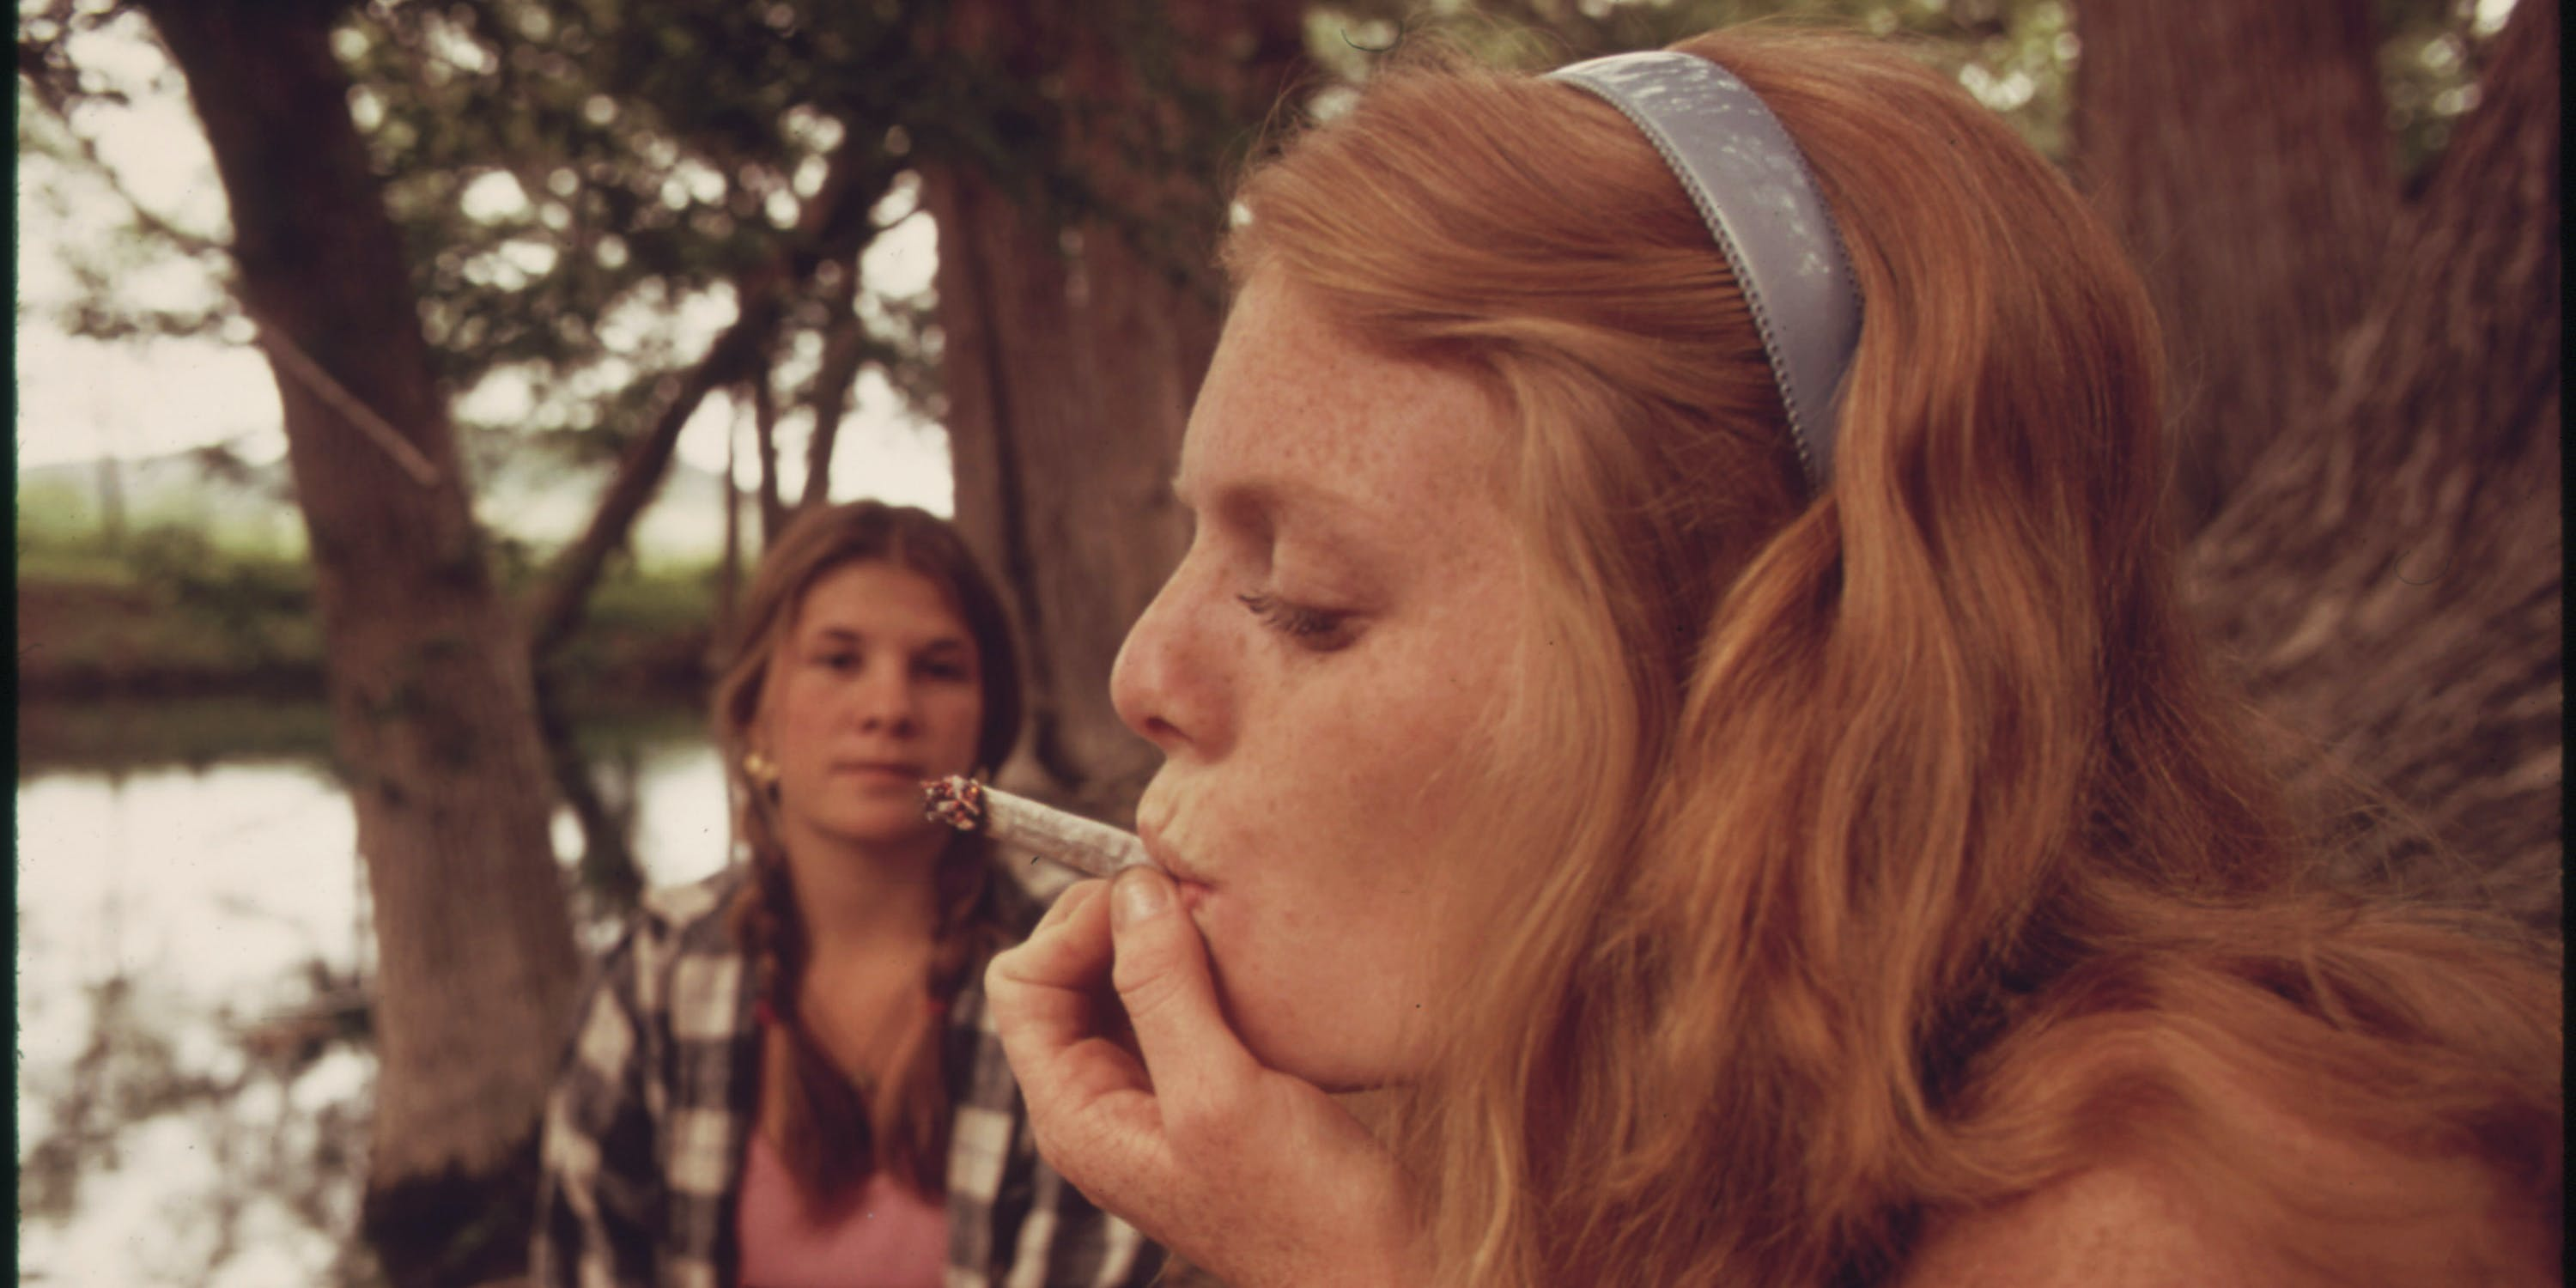 One Girl Smokes Pot While Her Friend Watches